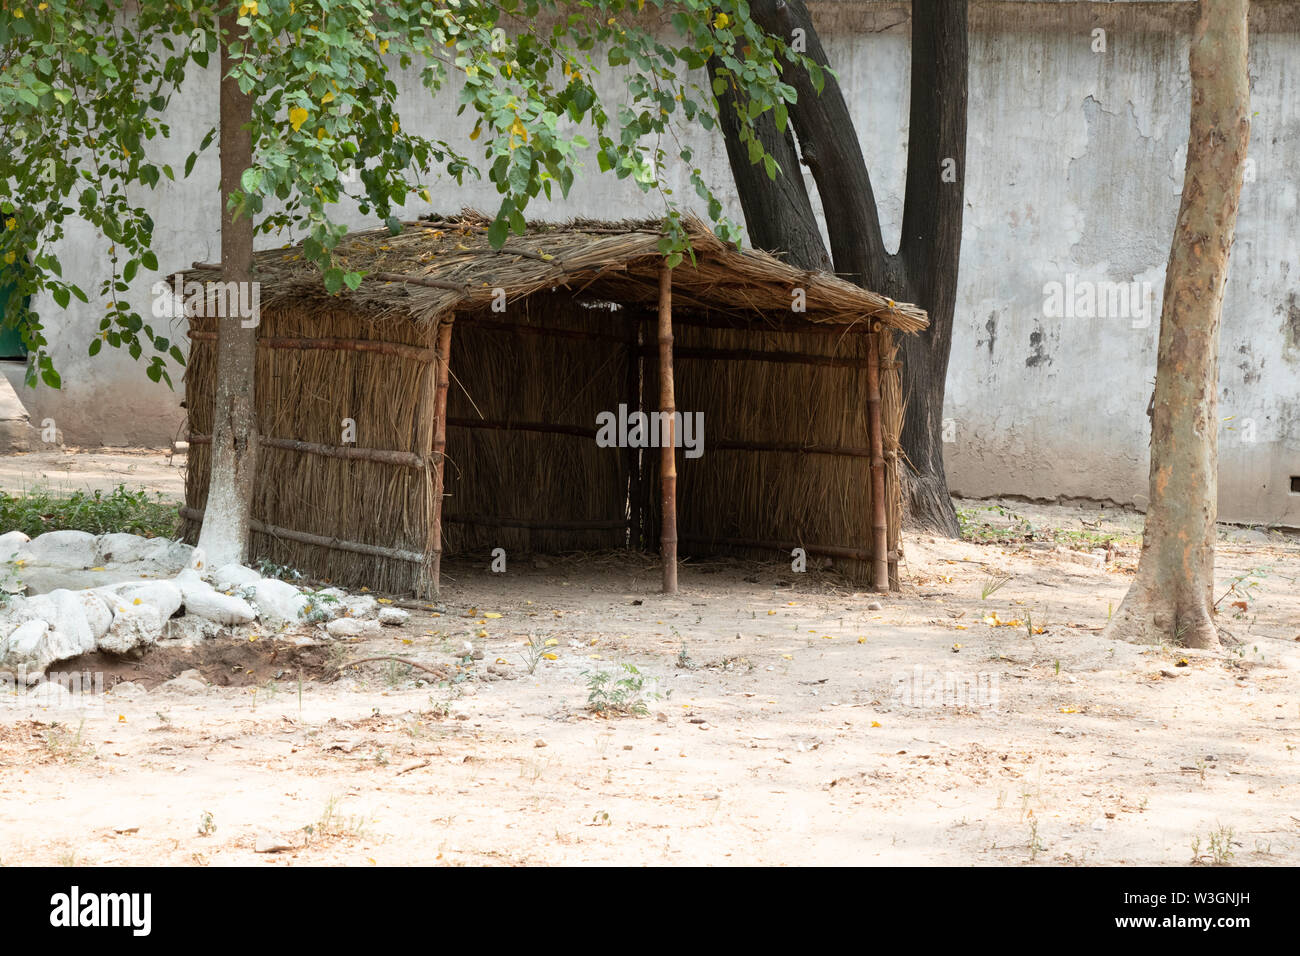 Wood grass Hut in Zoo,  used by animals for shelter. - Stock Image